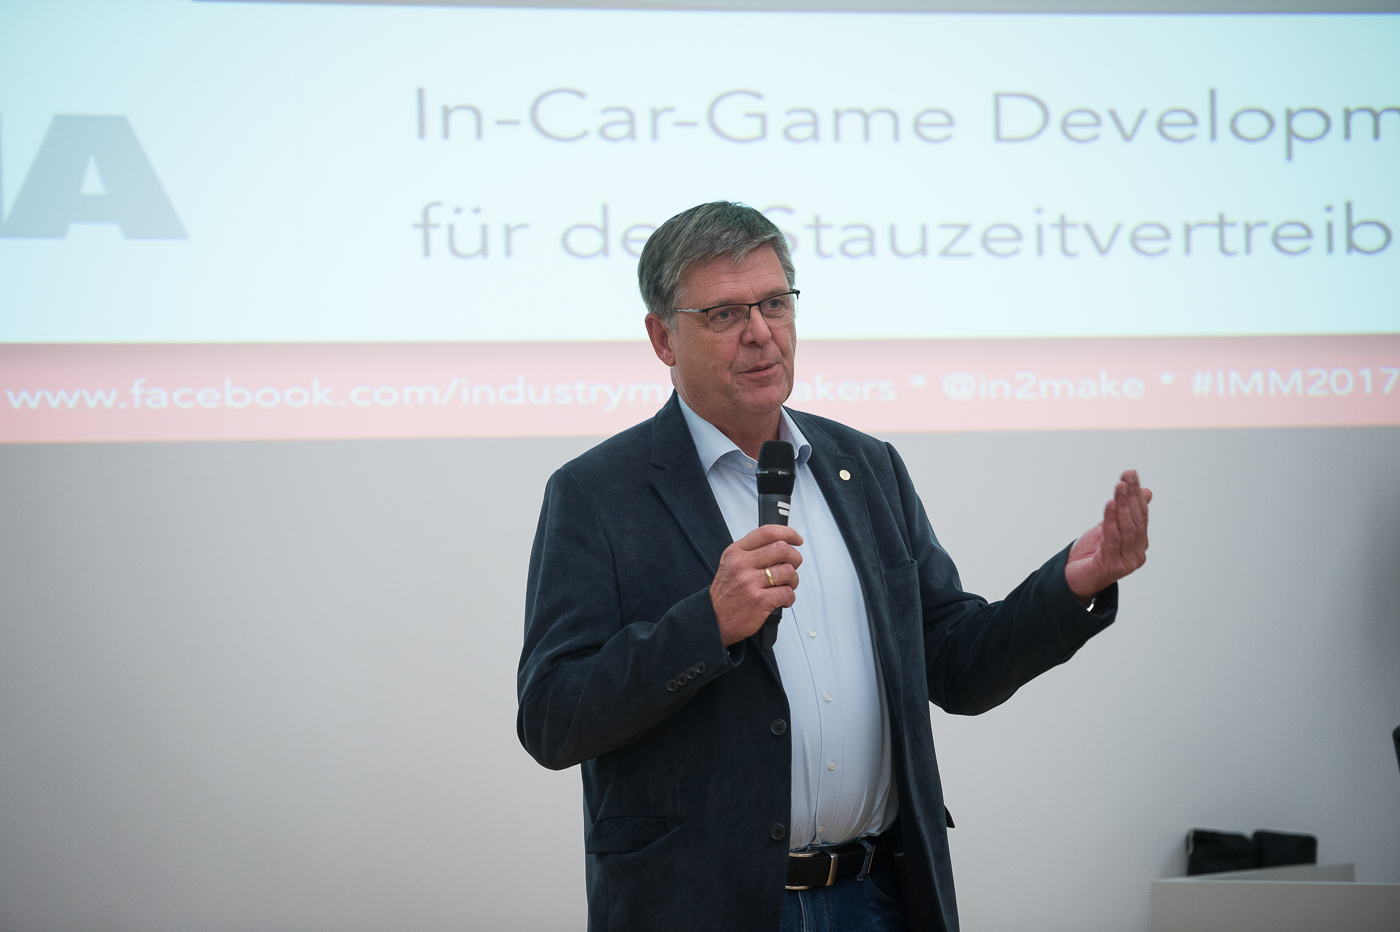 Briefing: In-car Game Development